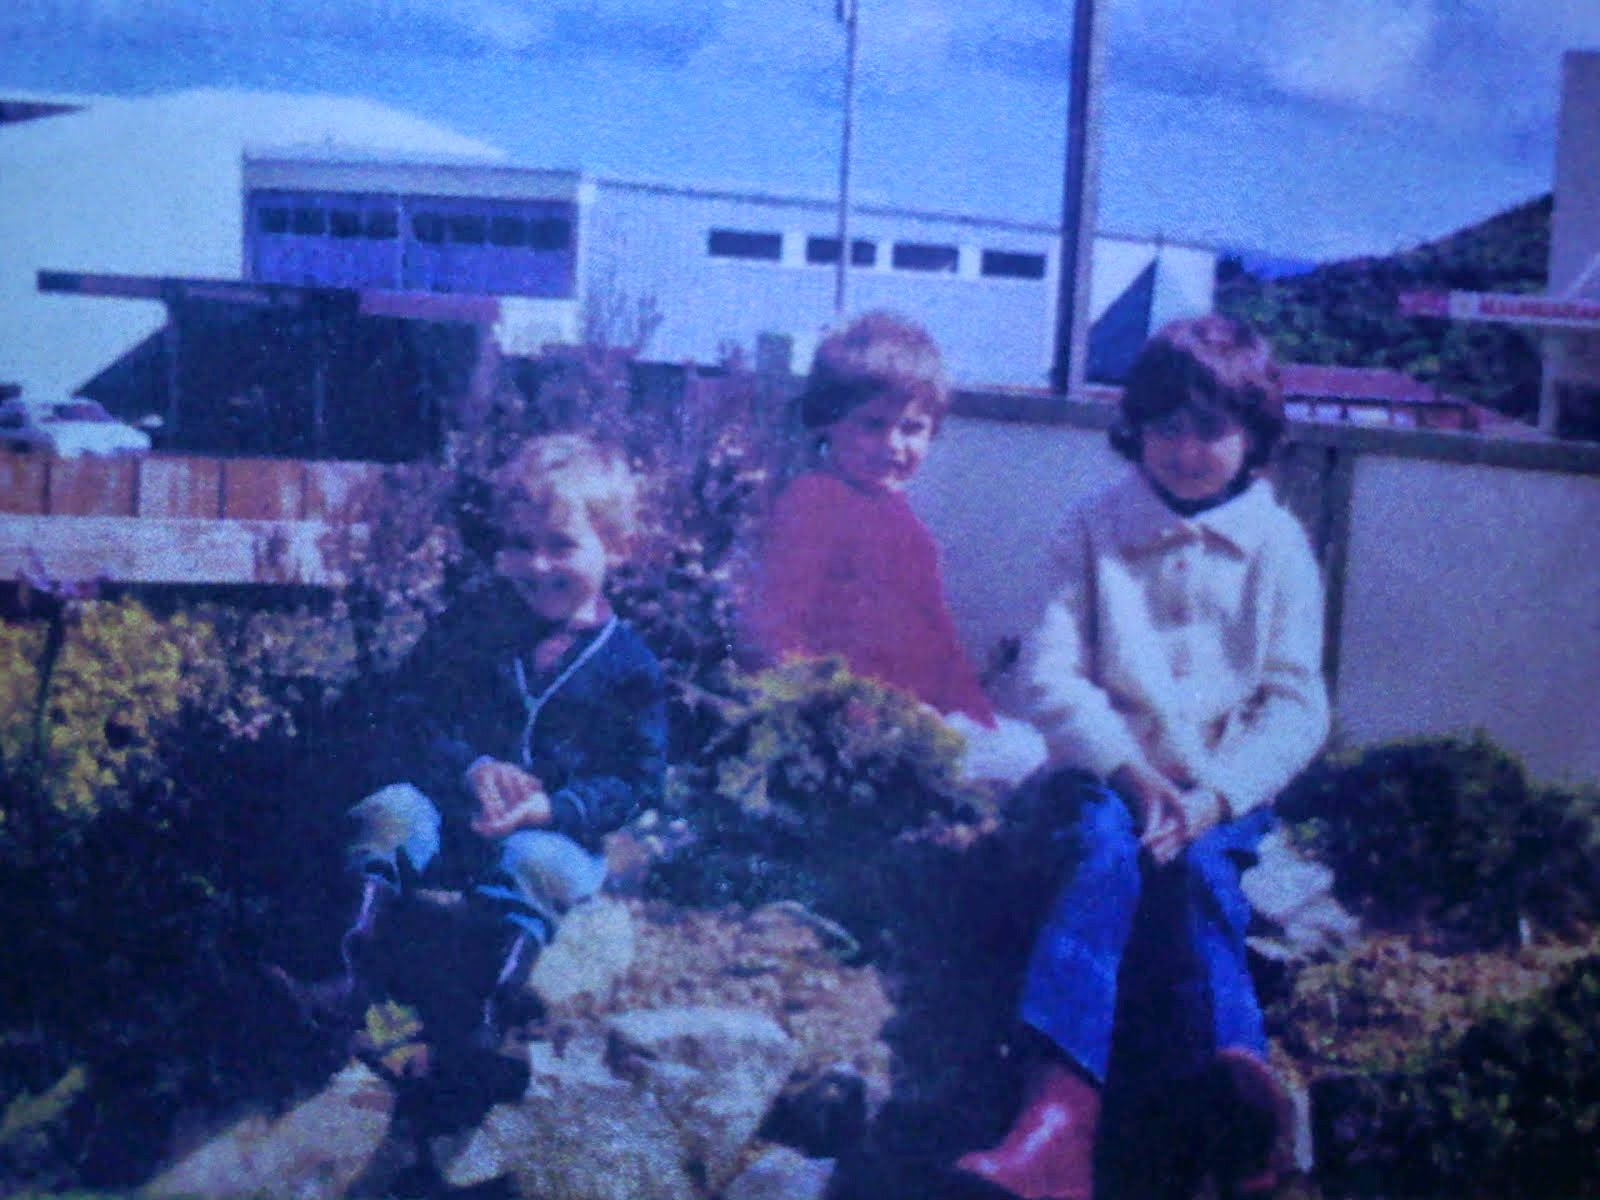 Myself, my brother, and sister, circa 1978.